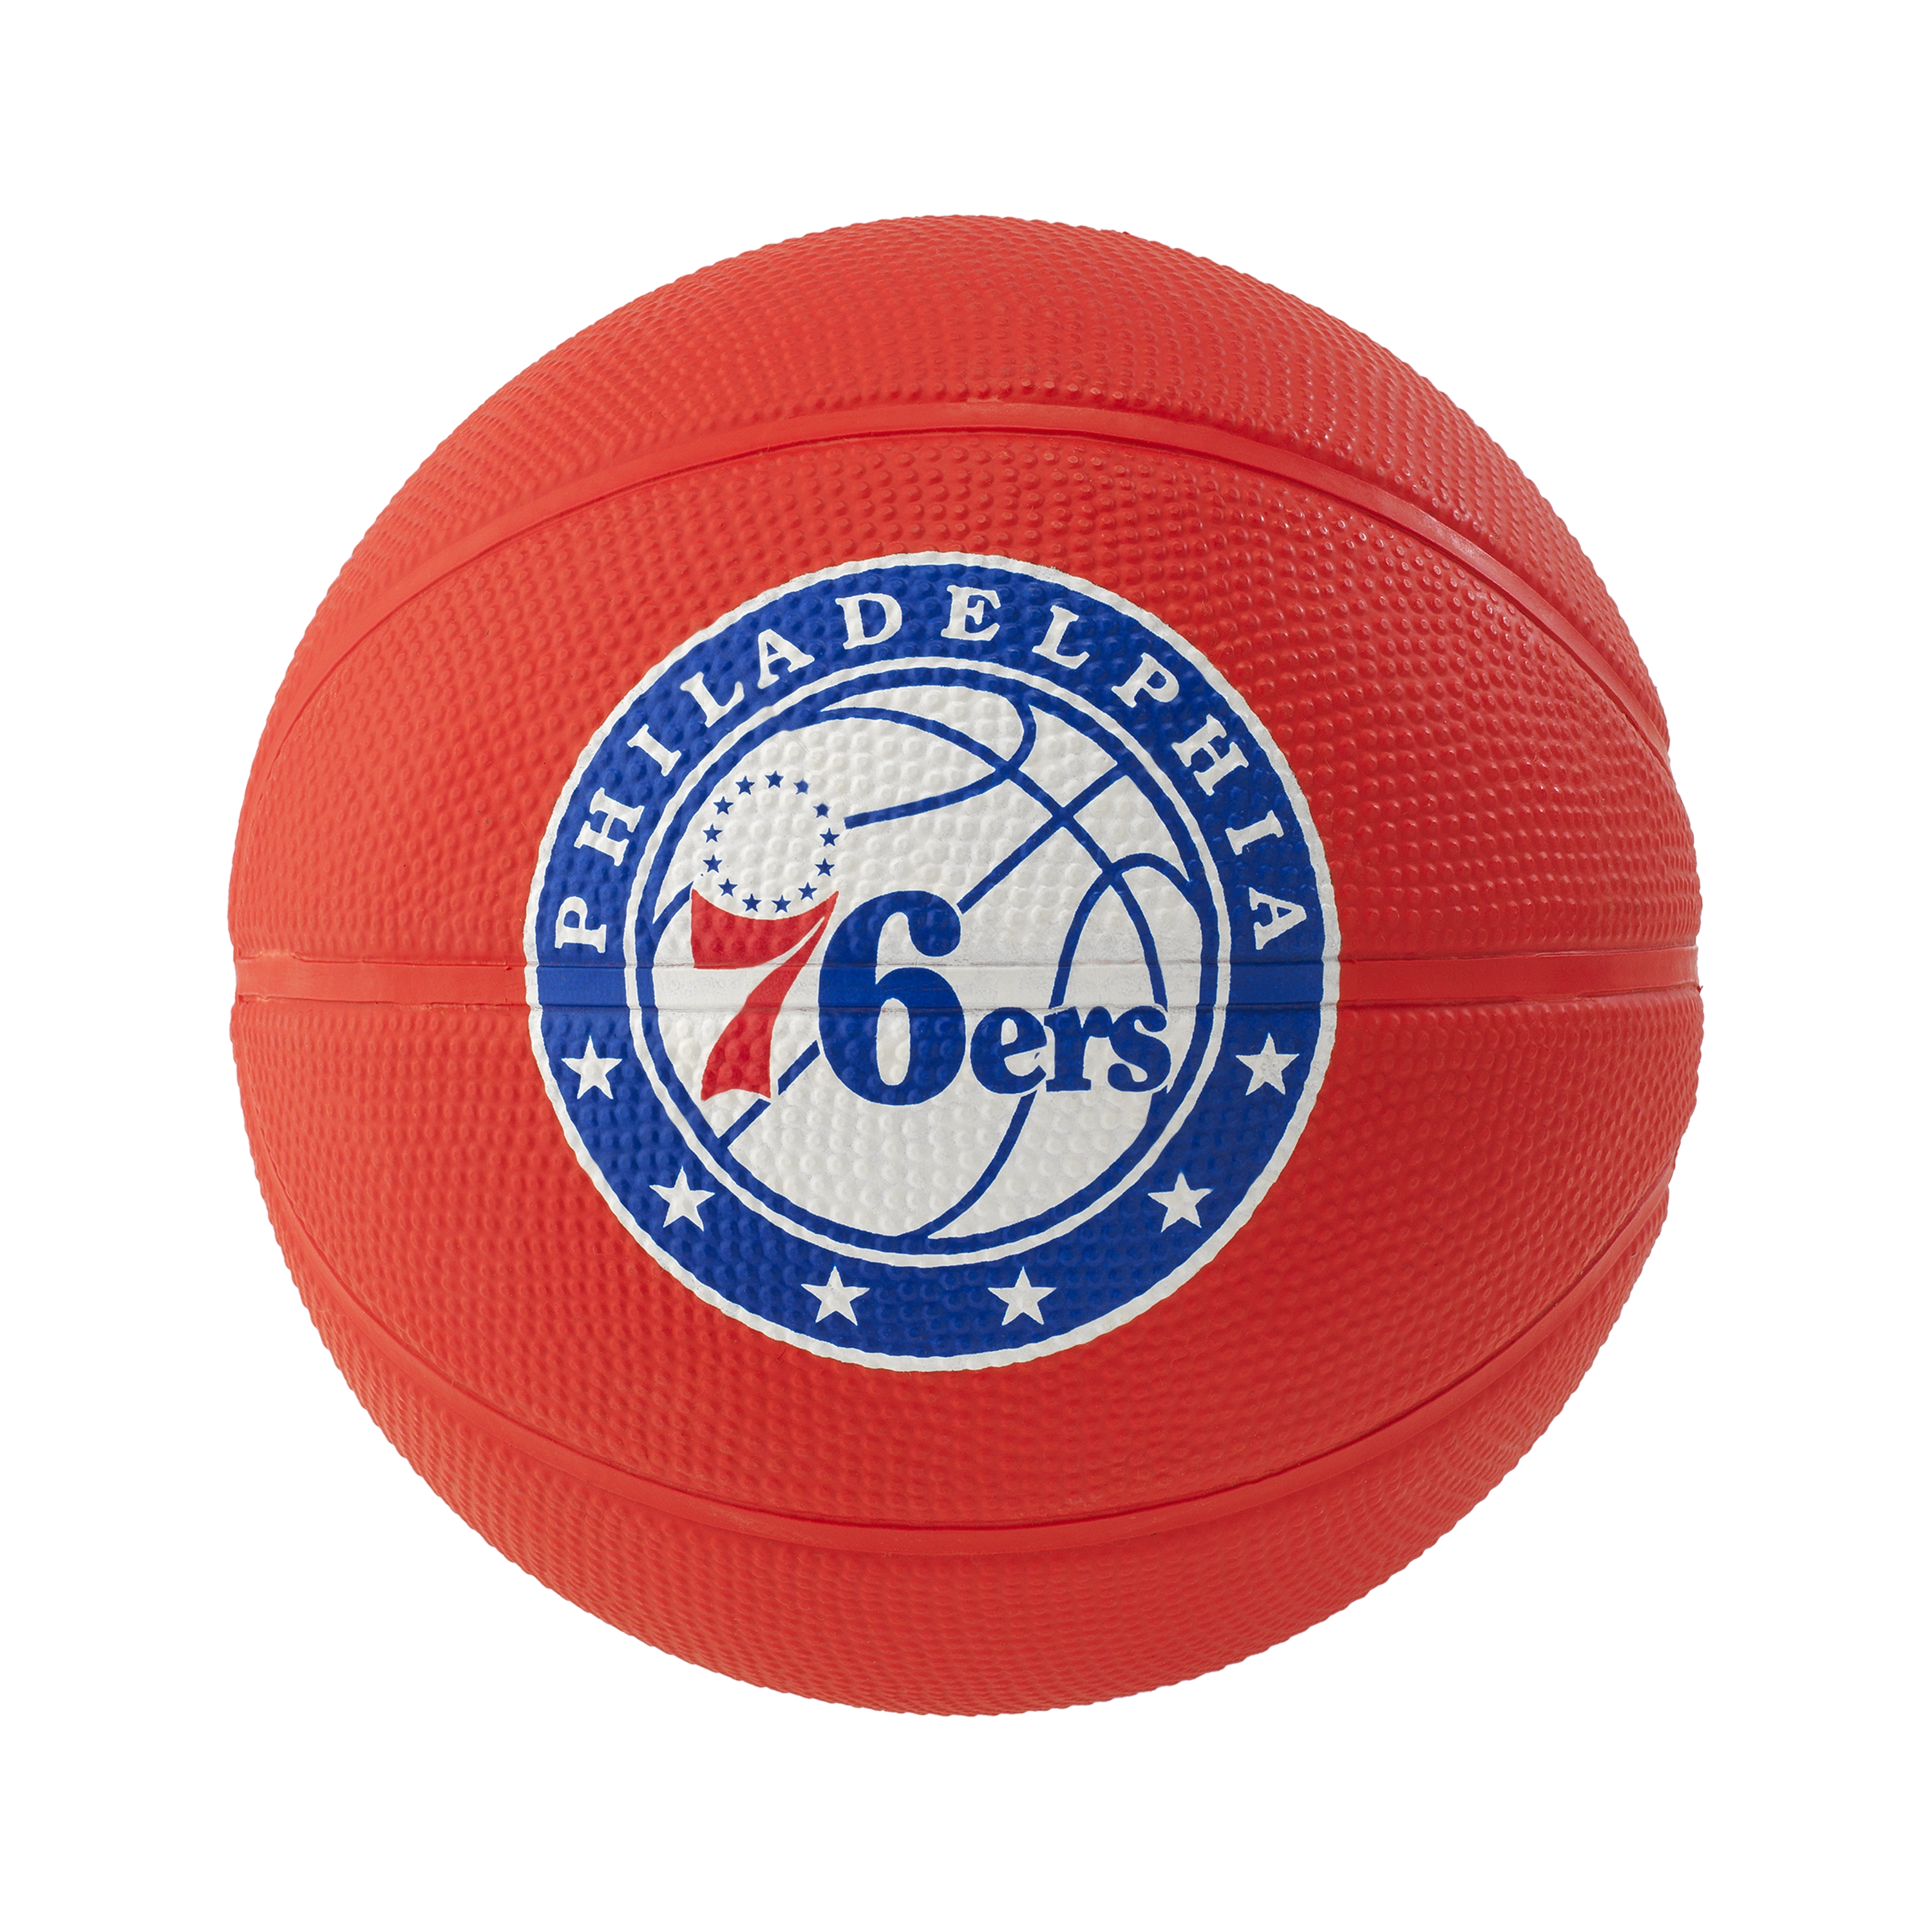 Spalding NBA Philadelphia 76ers Team Mini